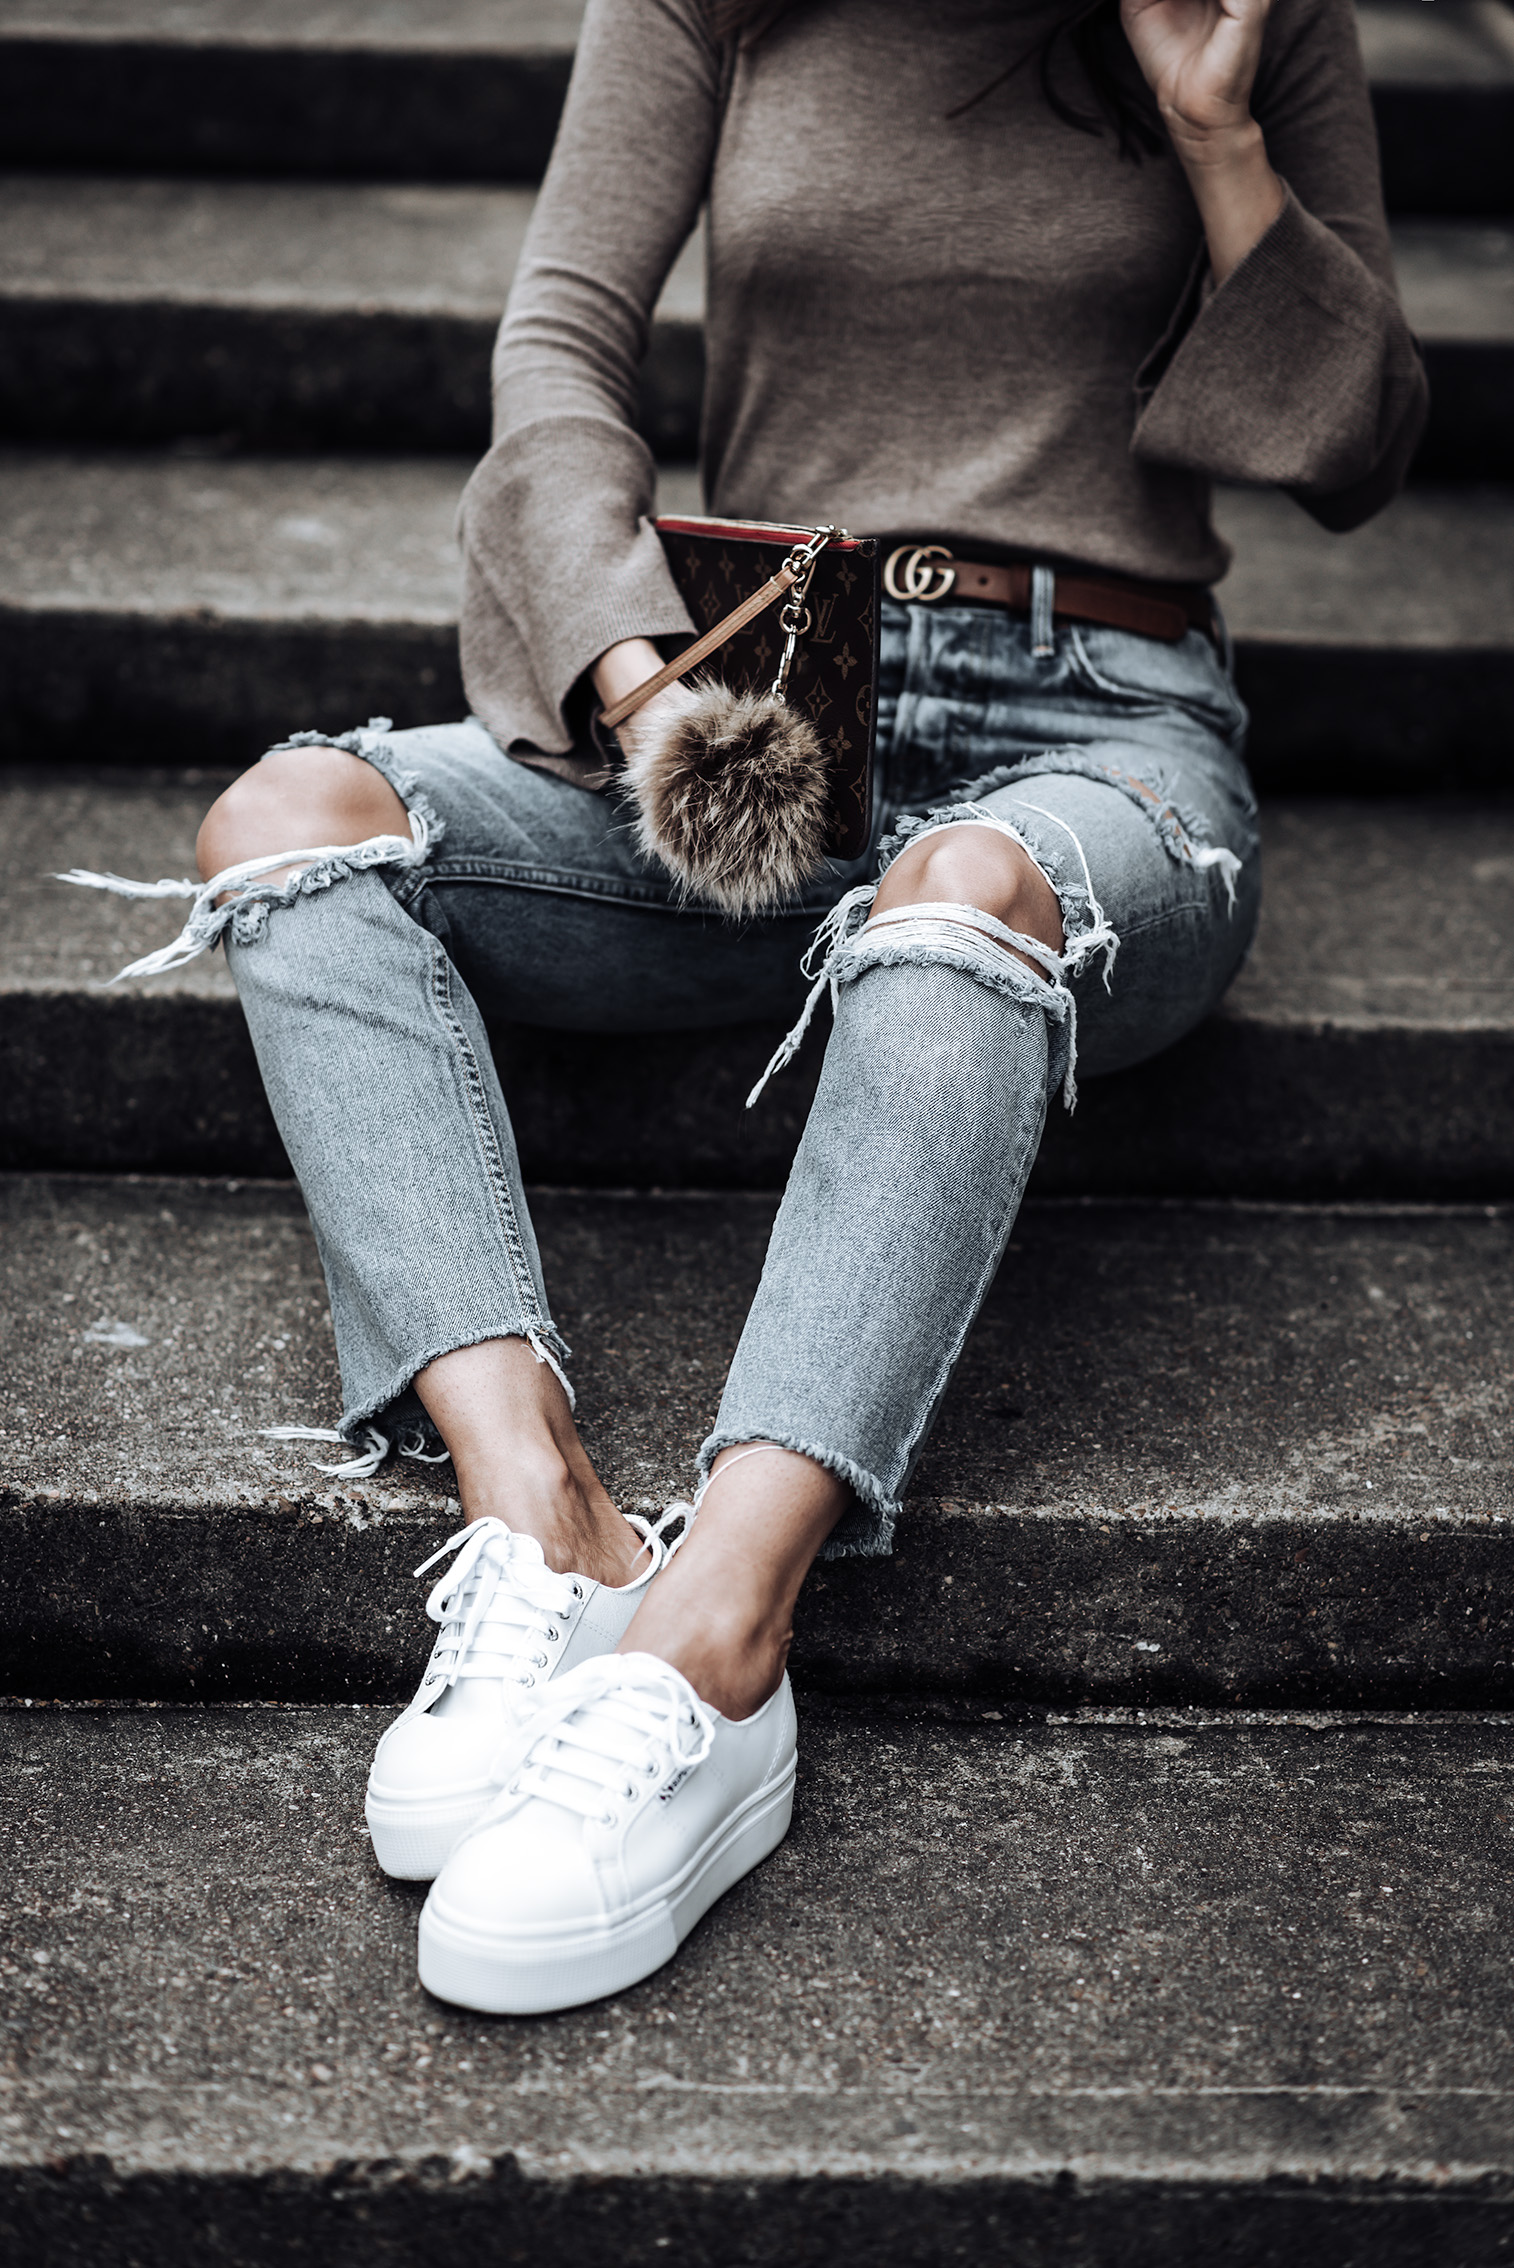 Trend report - The accessories edition | Trumpet Sleeve Sweater | Fiddler Cap | Karolina GRLFRND Denim | Brown Gucci Belt | Supergra Platform Sneakers | #streetstyle #guccibelt #Grlfrnddenim #platformsneakers #revolve #casualfashion #outfitideas #liketkit